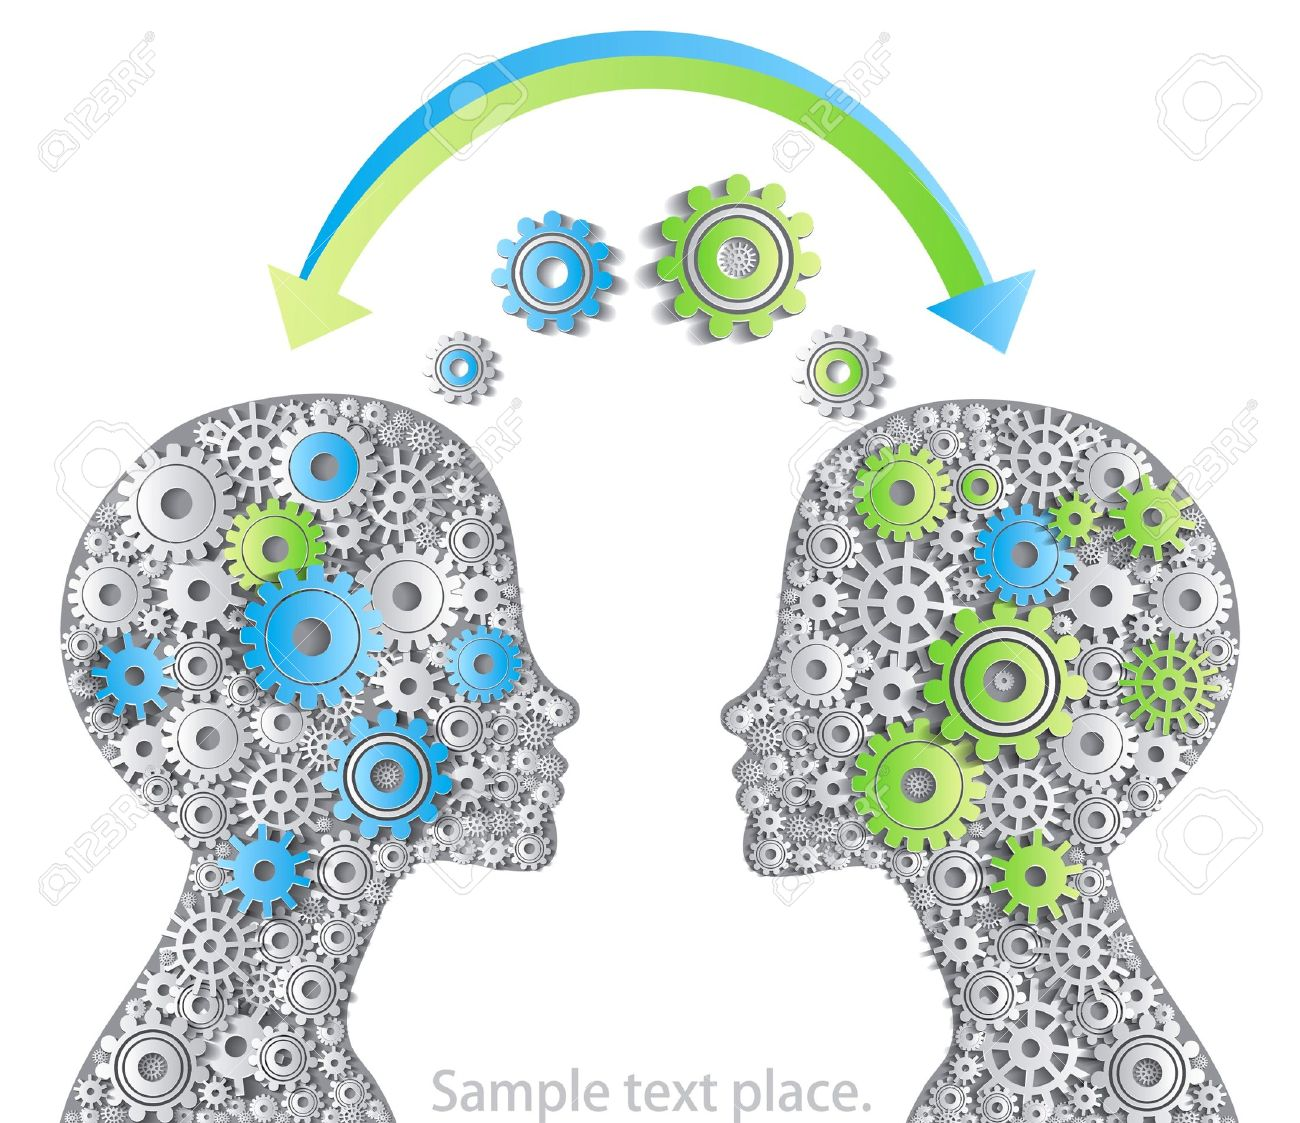 Idea for your head data exchange - 22010110